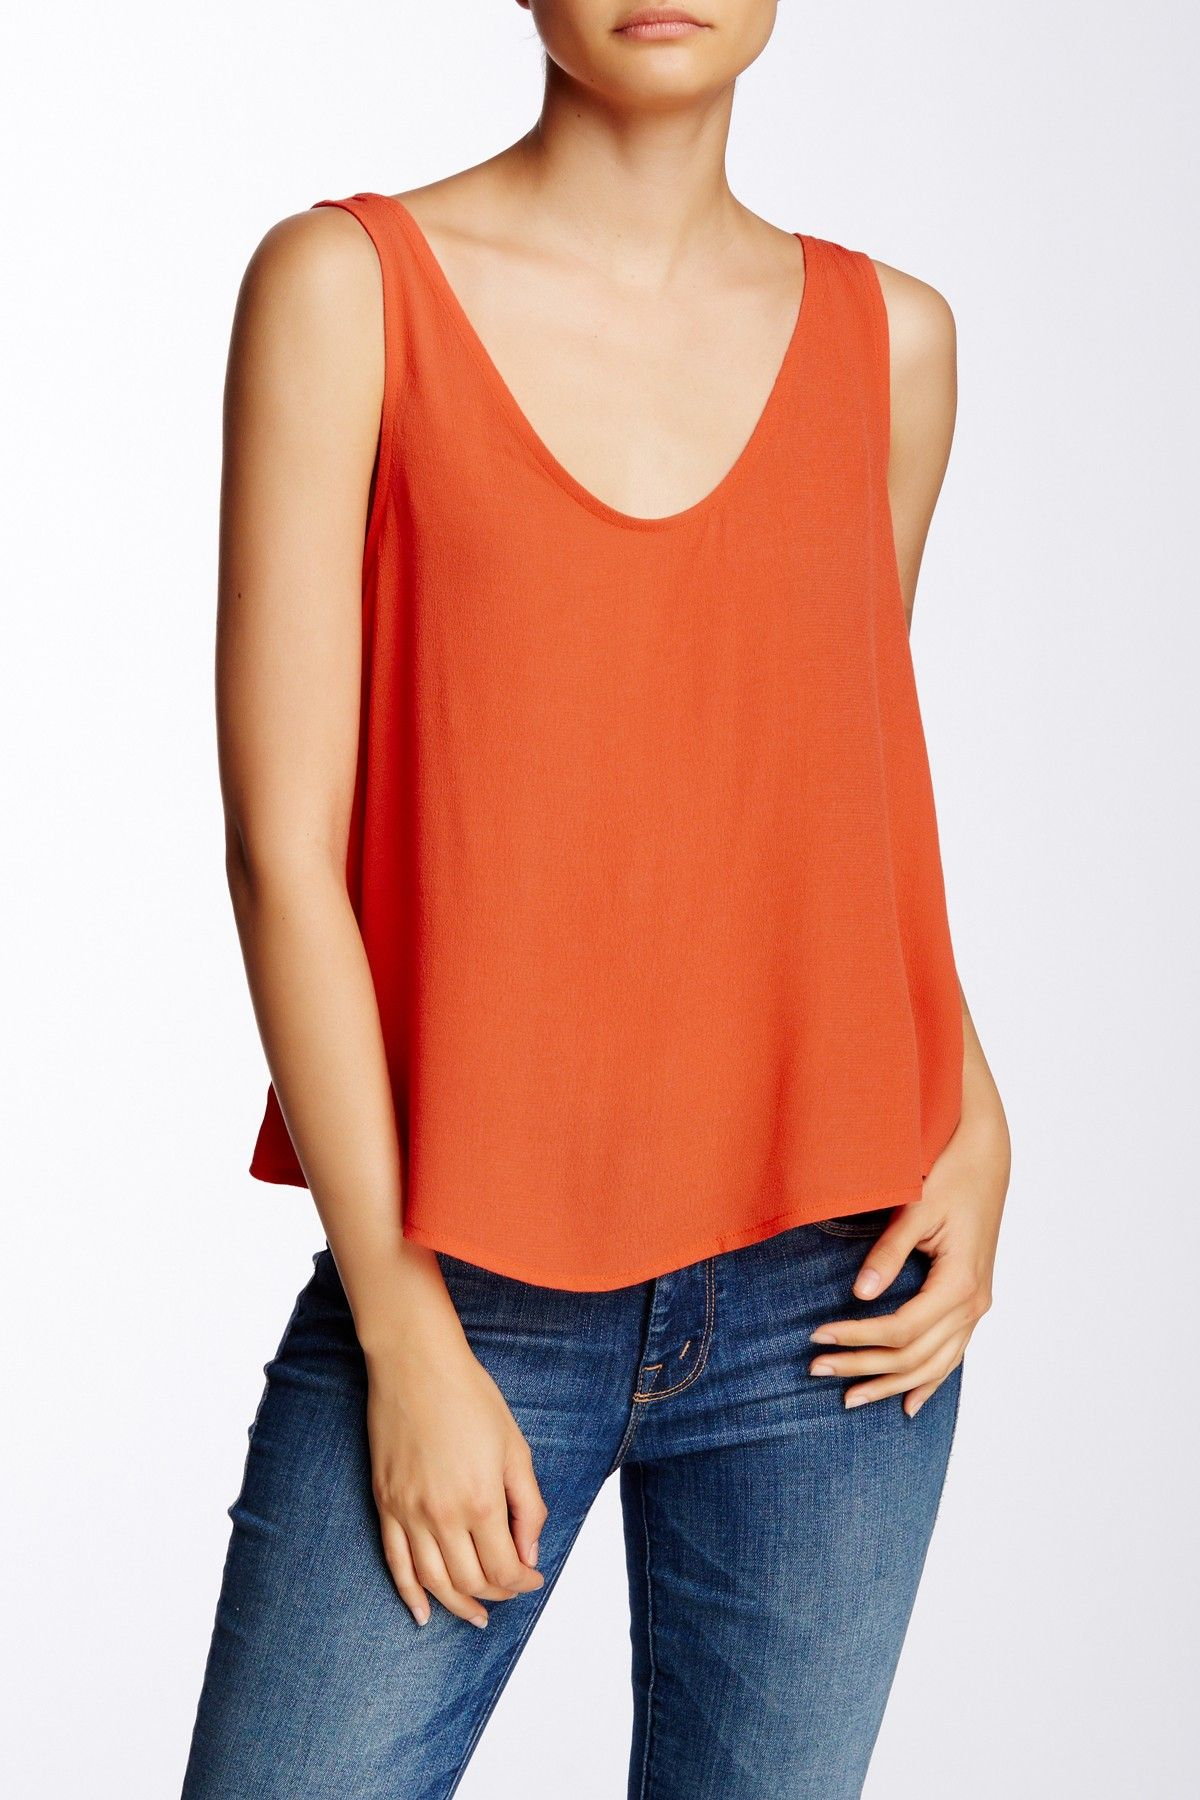 Lace Back Detail Tank by Elodie on @nordstrom_rack